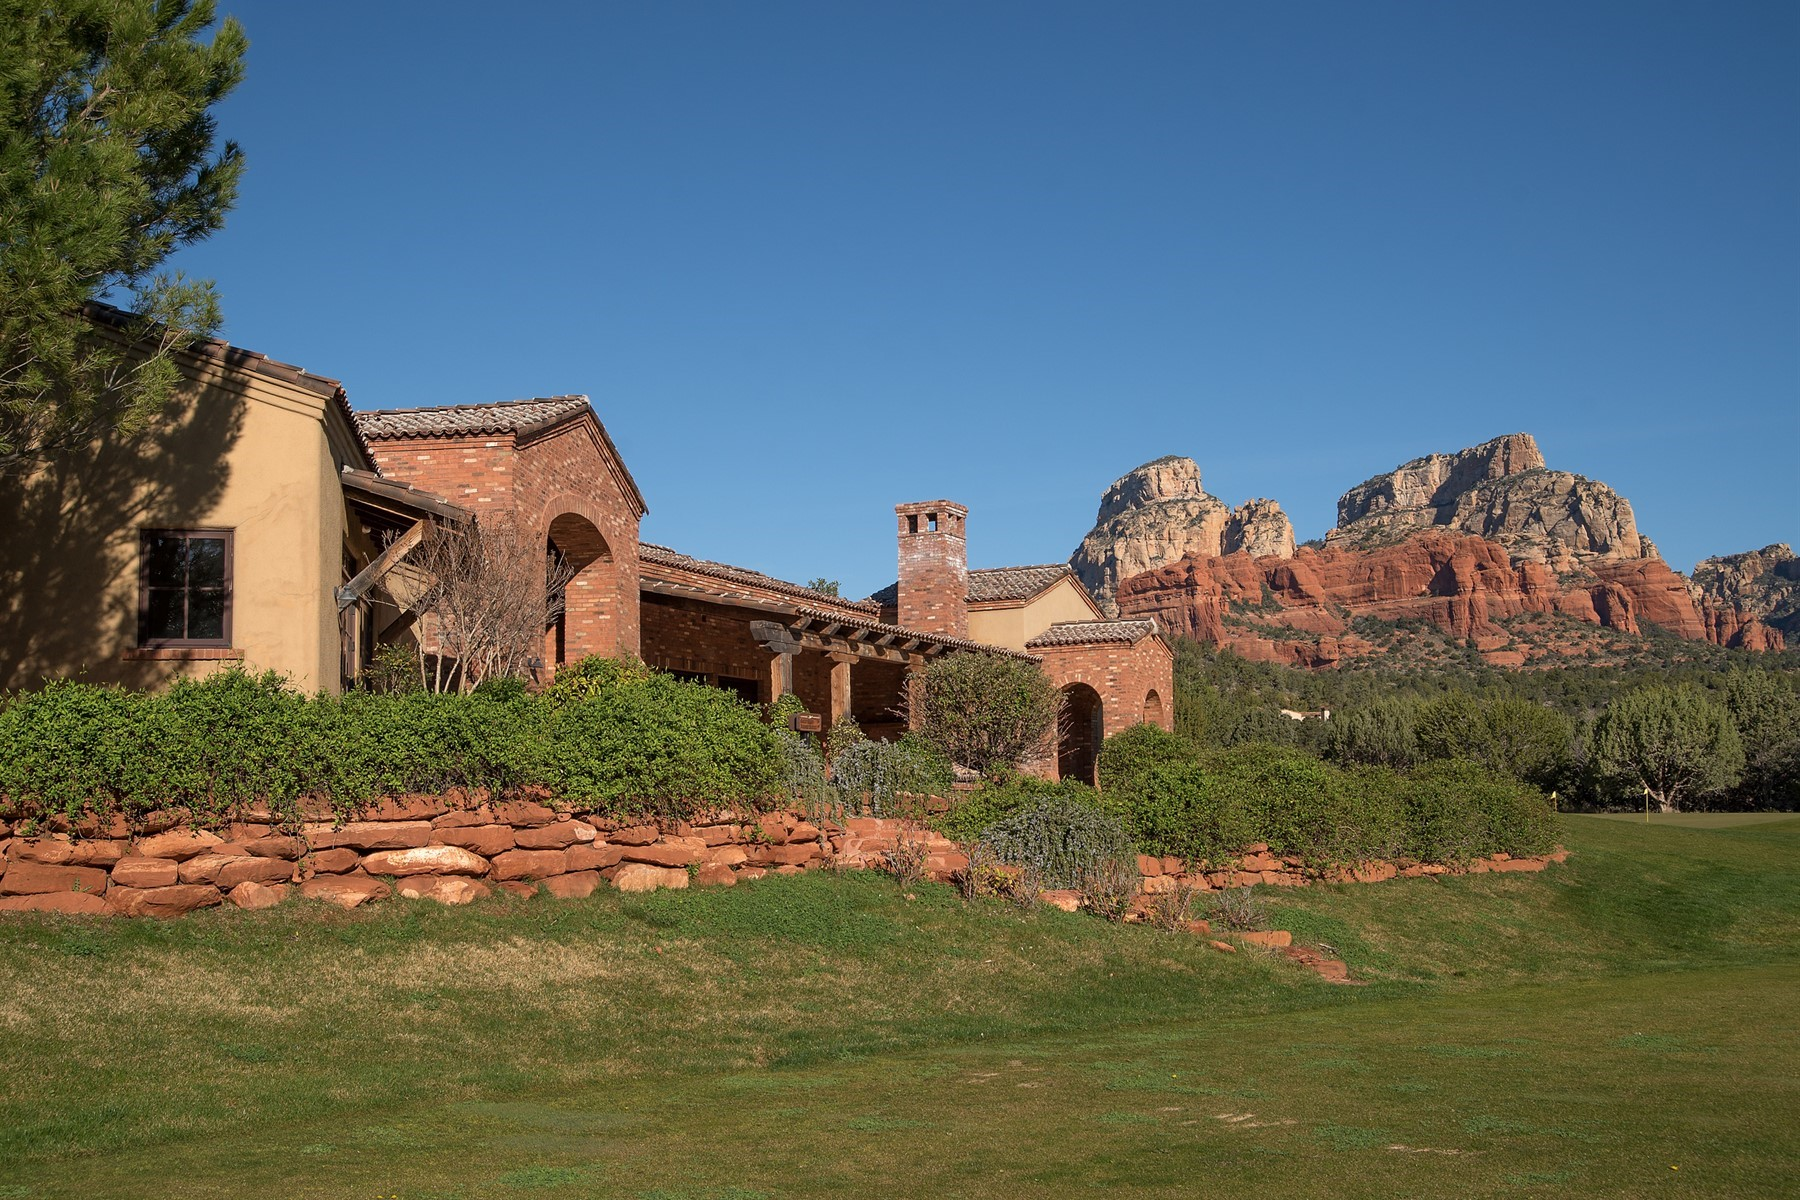 Single Family Homes for Sale at Seven Canyons 50 Canyon Vista Rd Sedona, Arizona 86336 United States